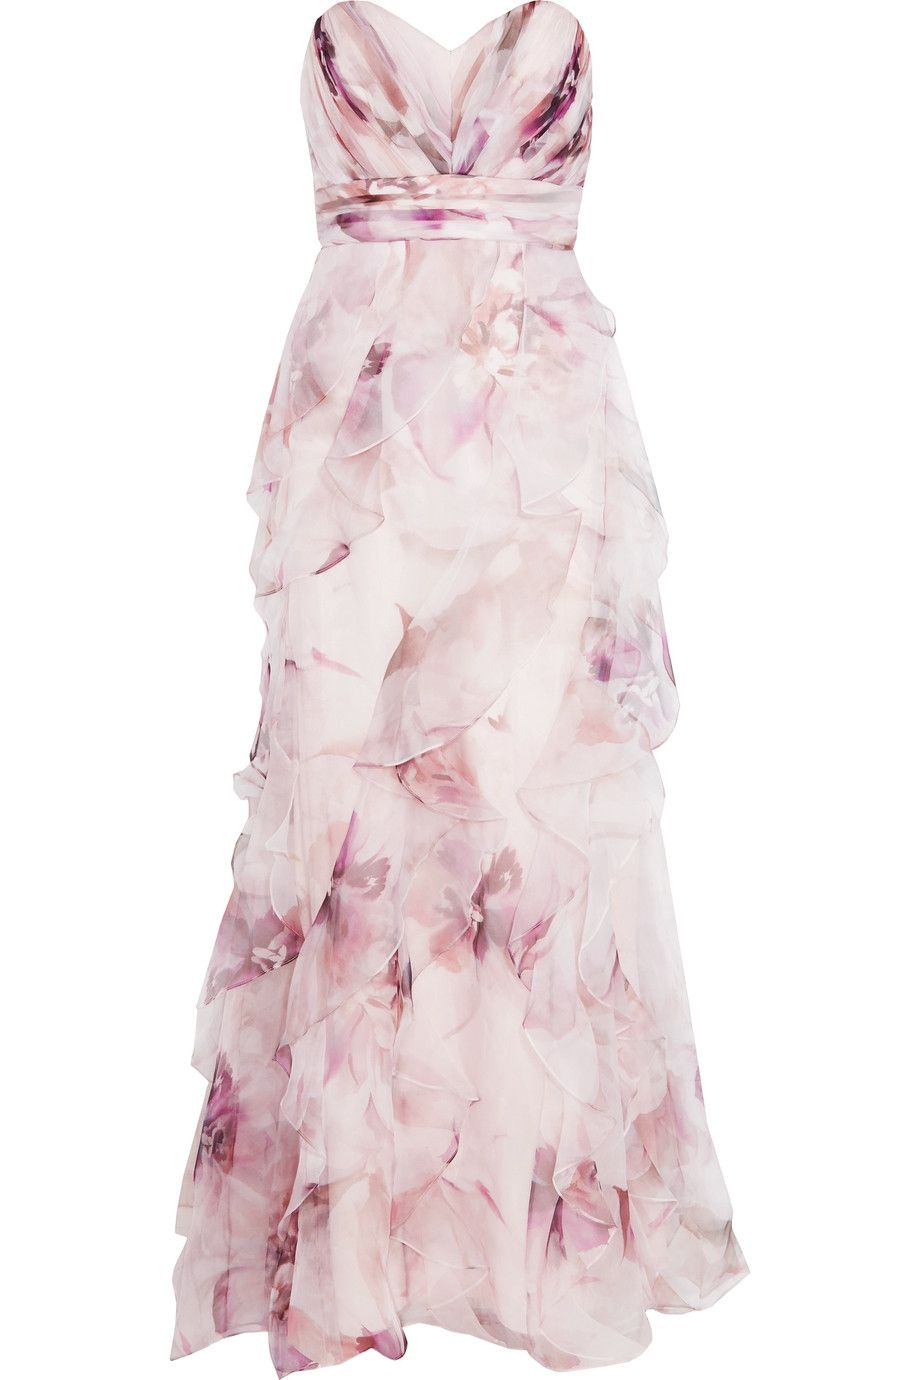 0a7f3c606ebd7 Shop on-sale Badgley Mischka Ruffled floral-print silk-chiffon gown. Browse  other discount designer Dresses & more on The Most Fashionable Fashion  Outlet, ...